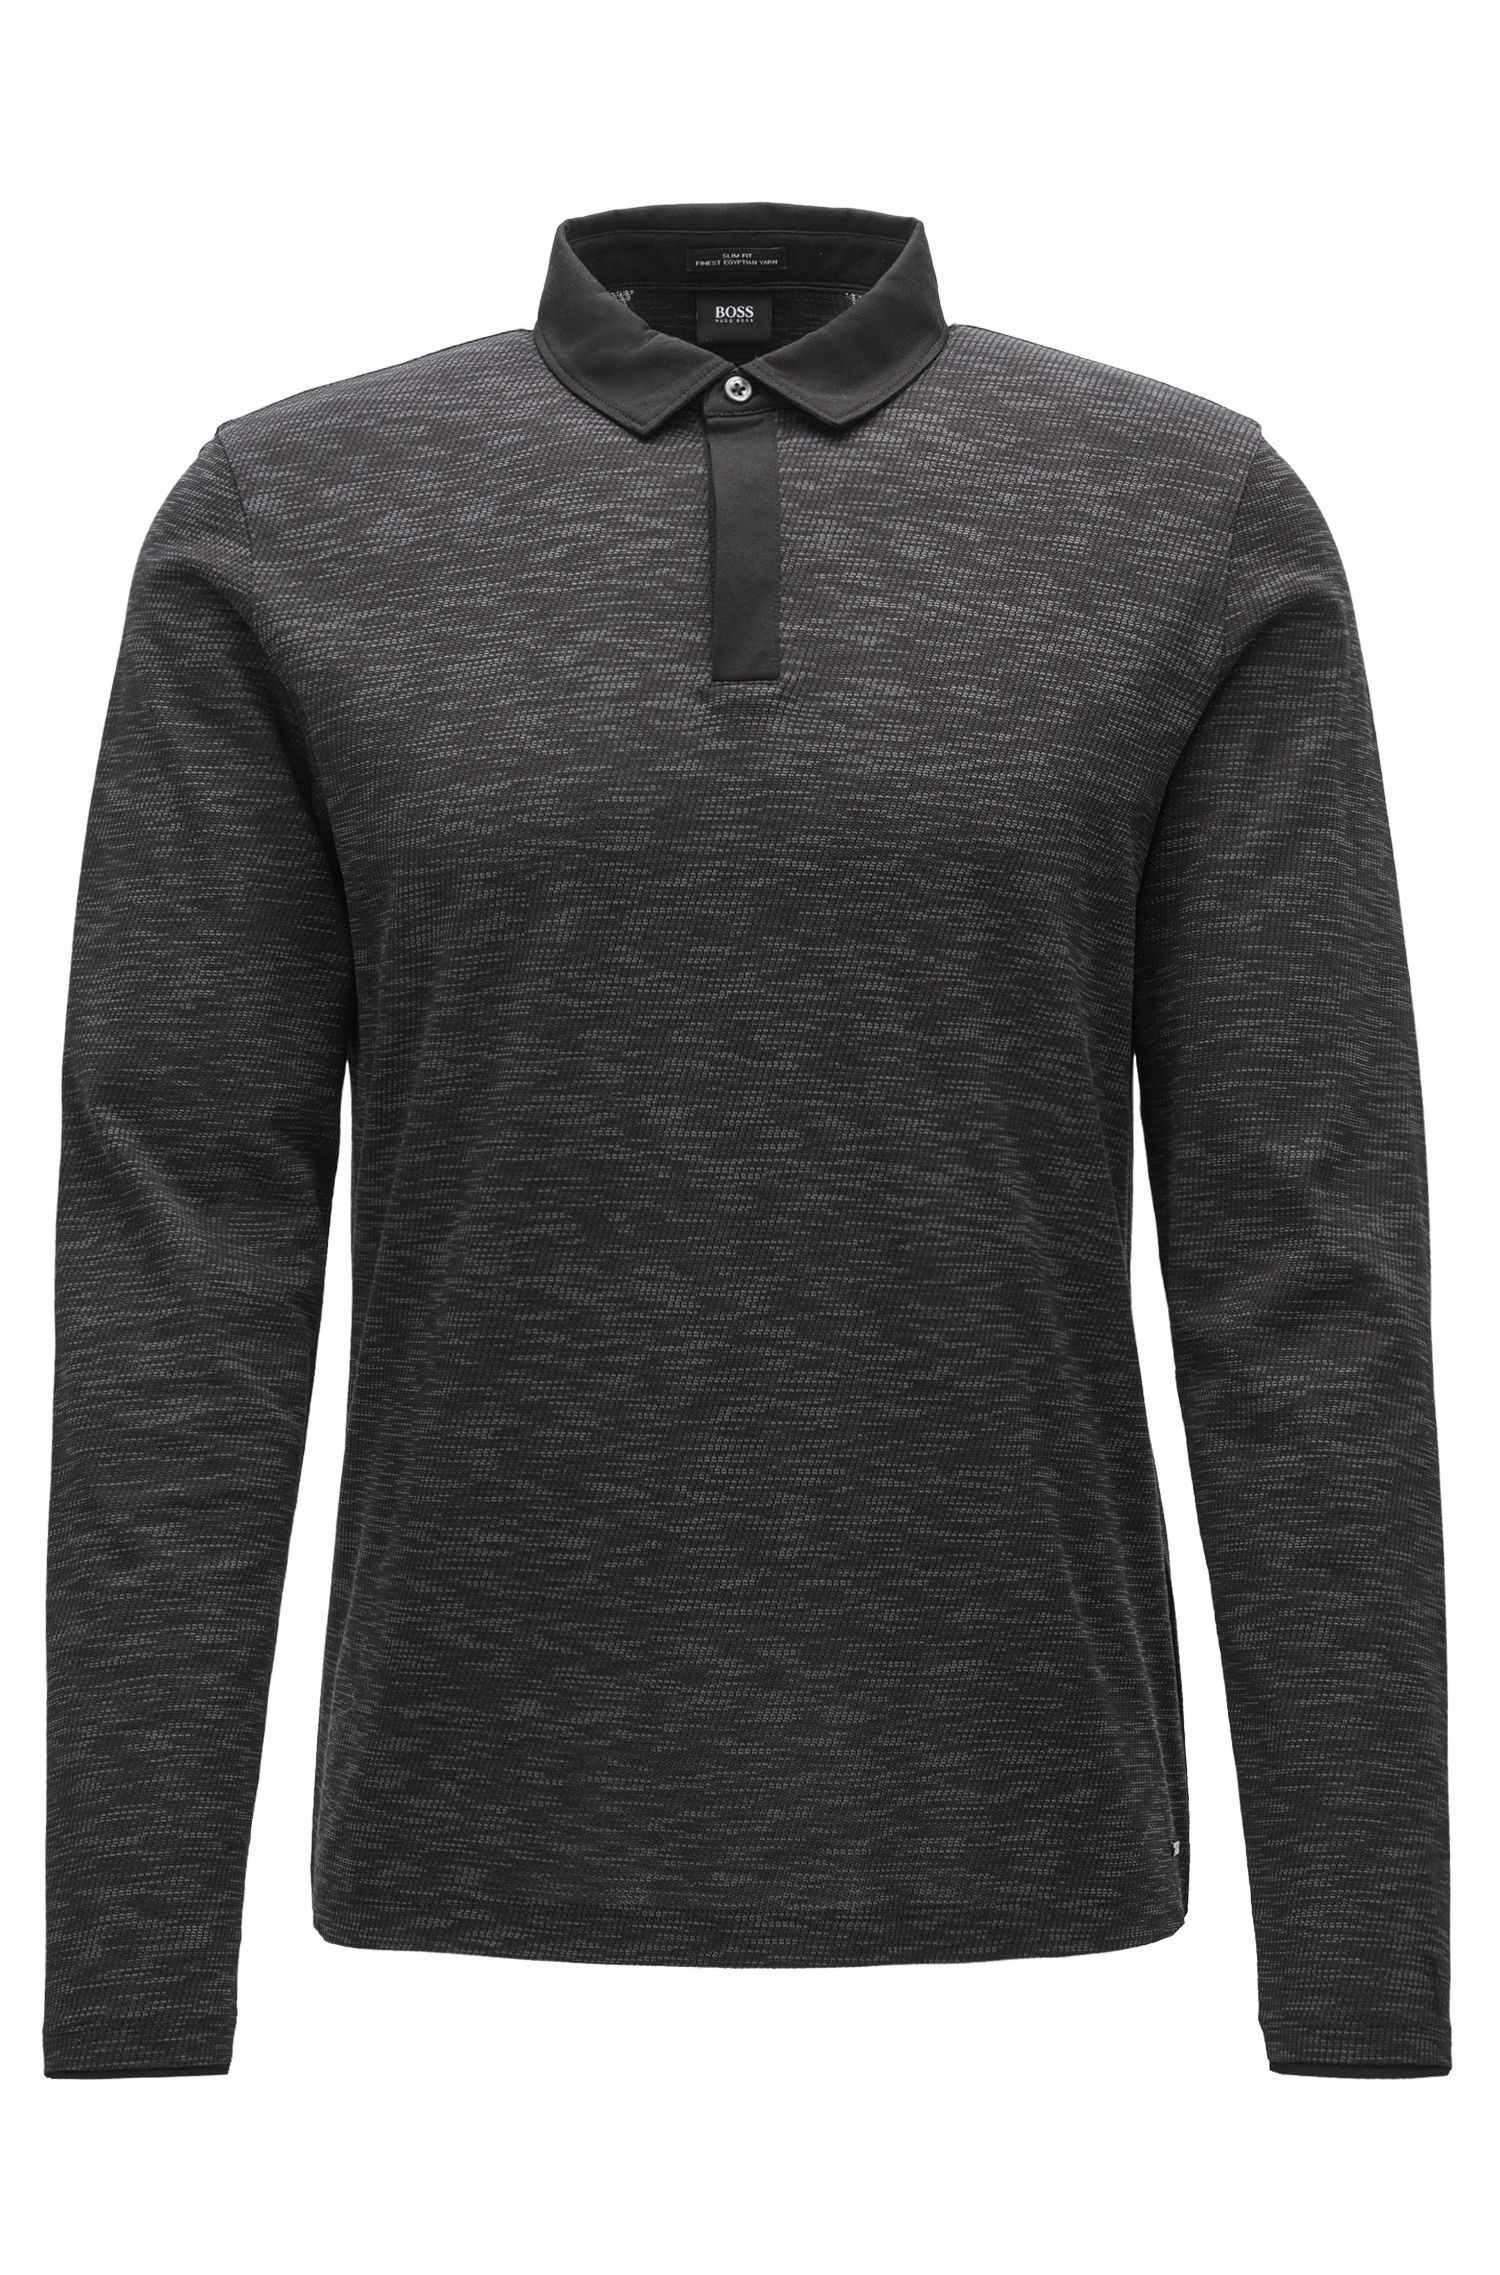 Long-sleeved slim-fit polo shirt in mercerised cotton jacquard